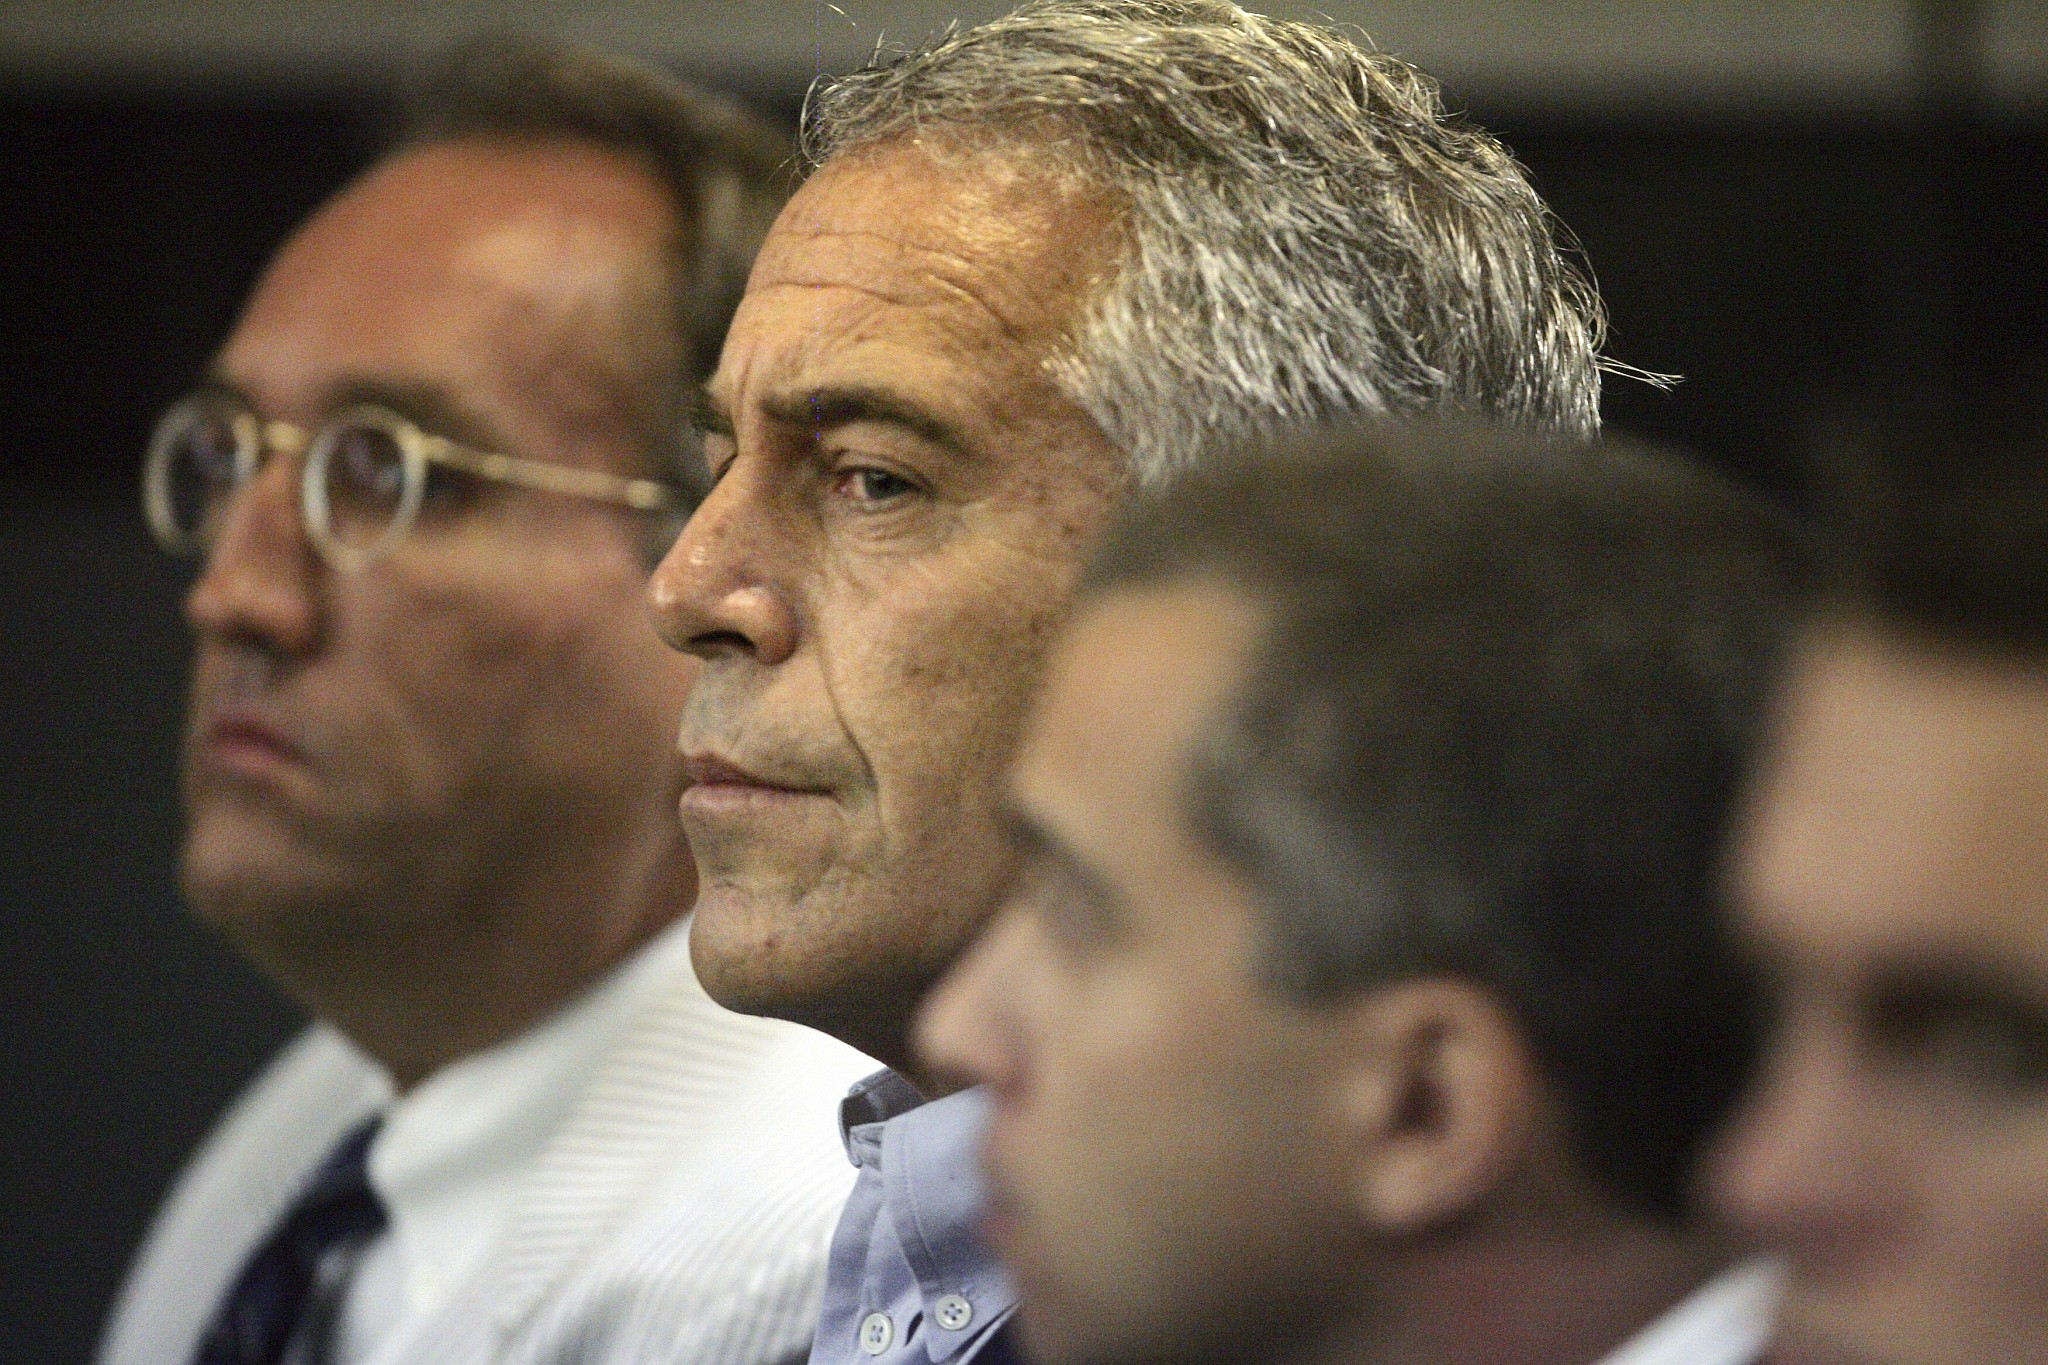 Jeffrey Epstein lured underage girls for sex acts - prosecutors